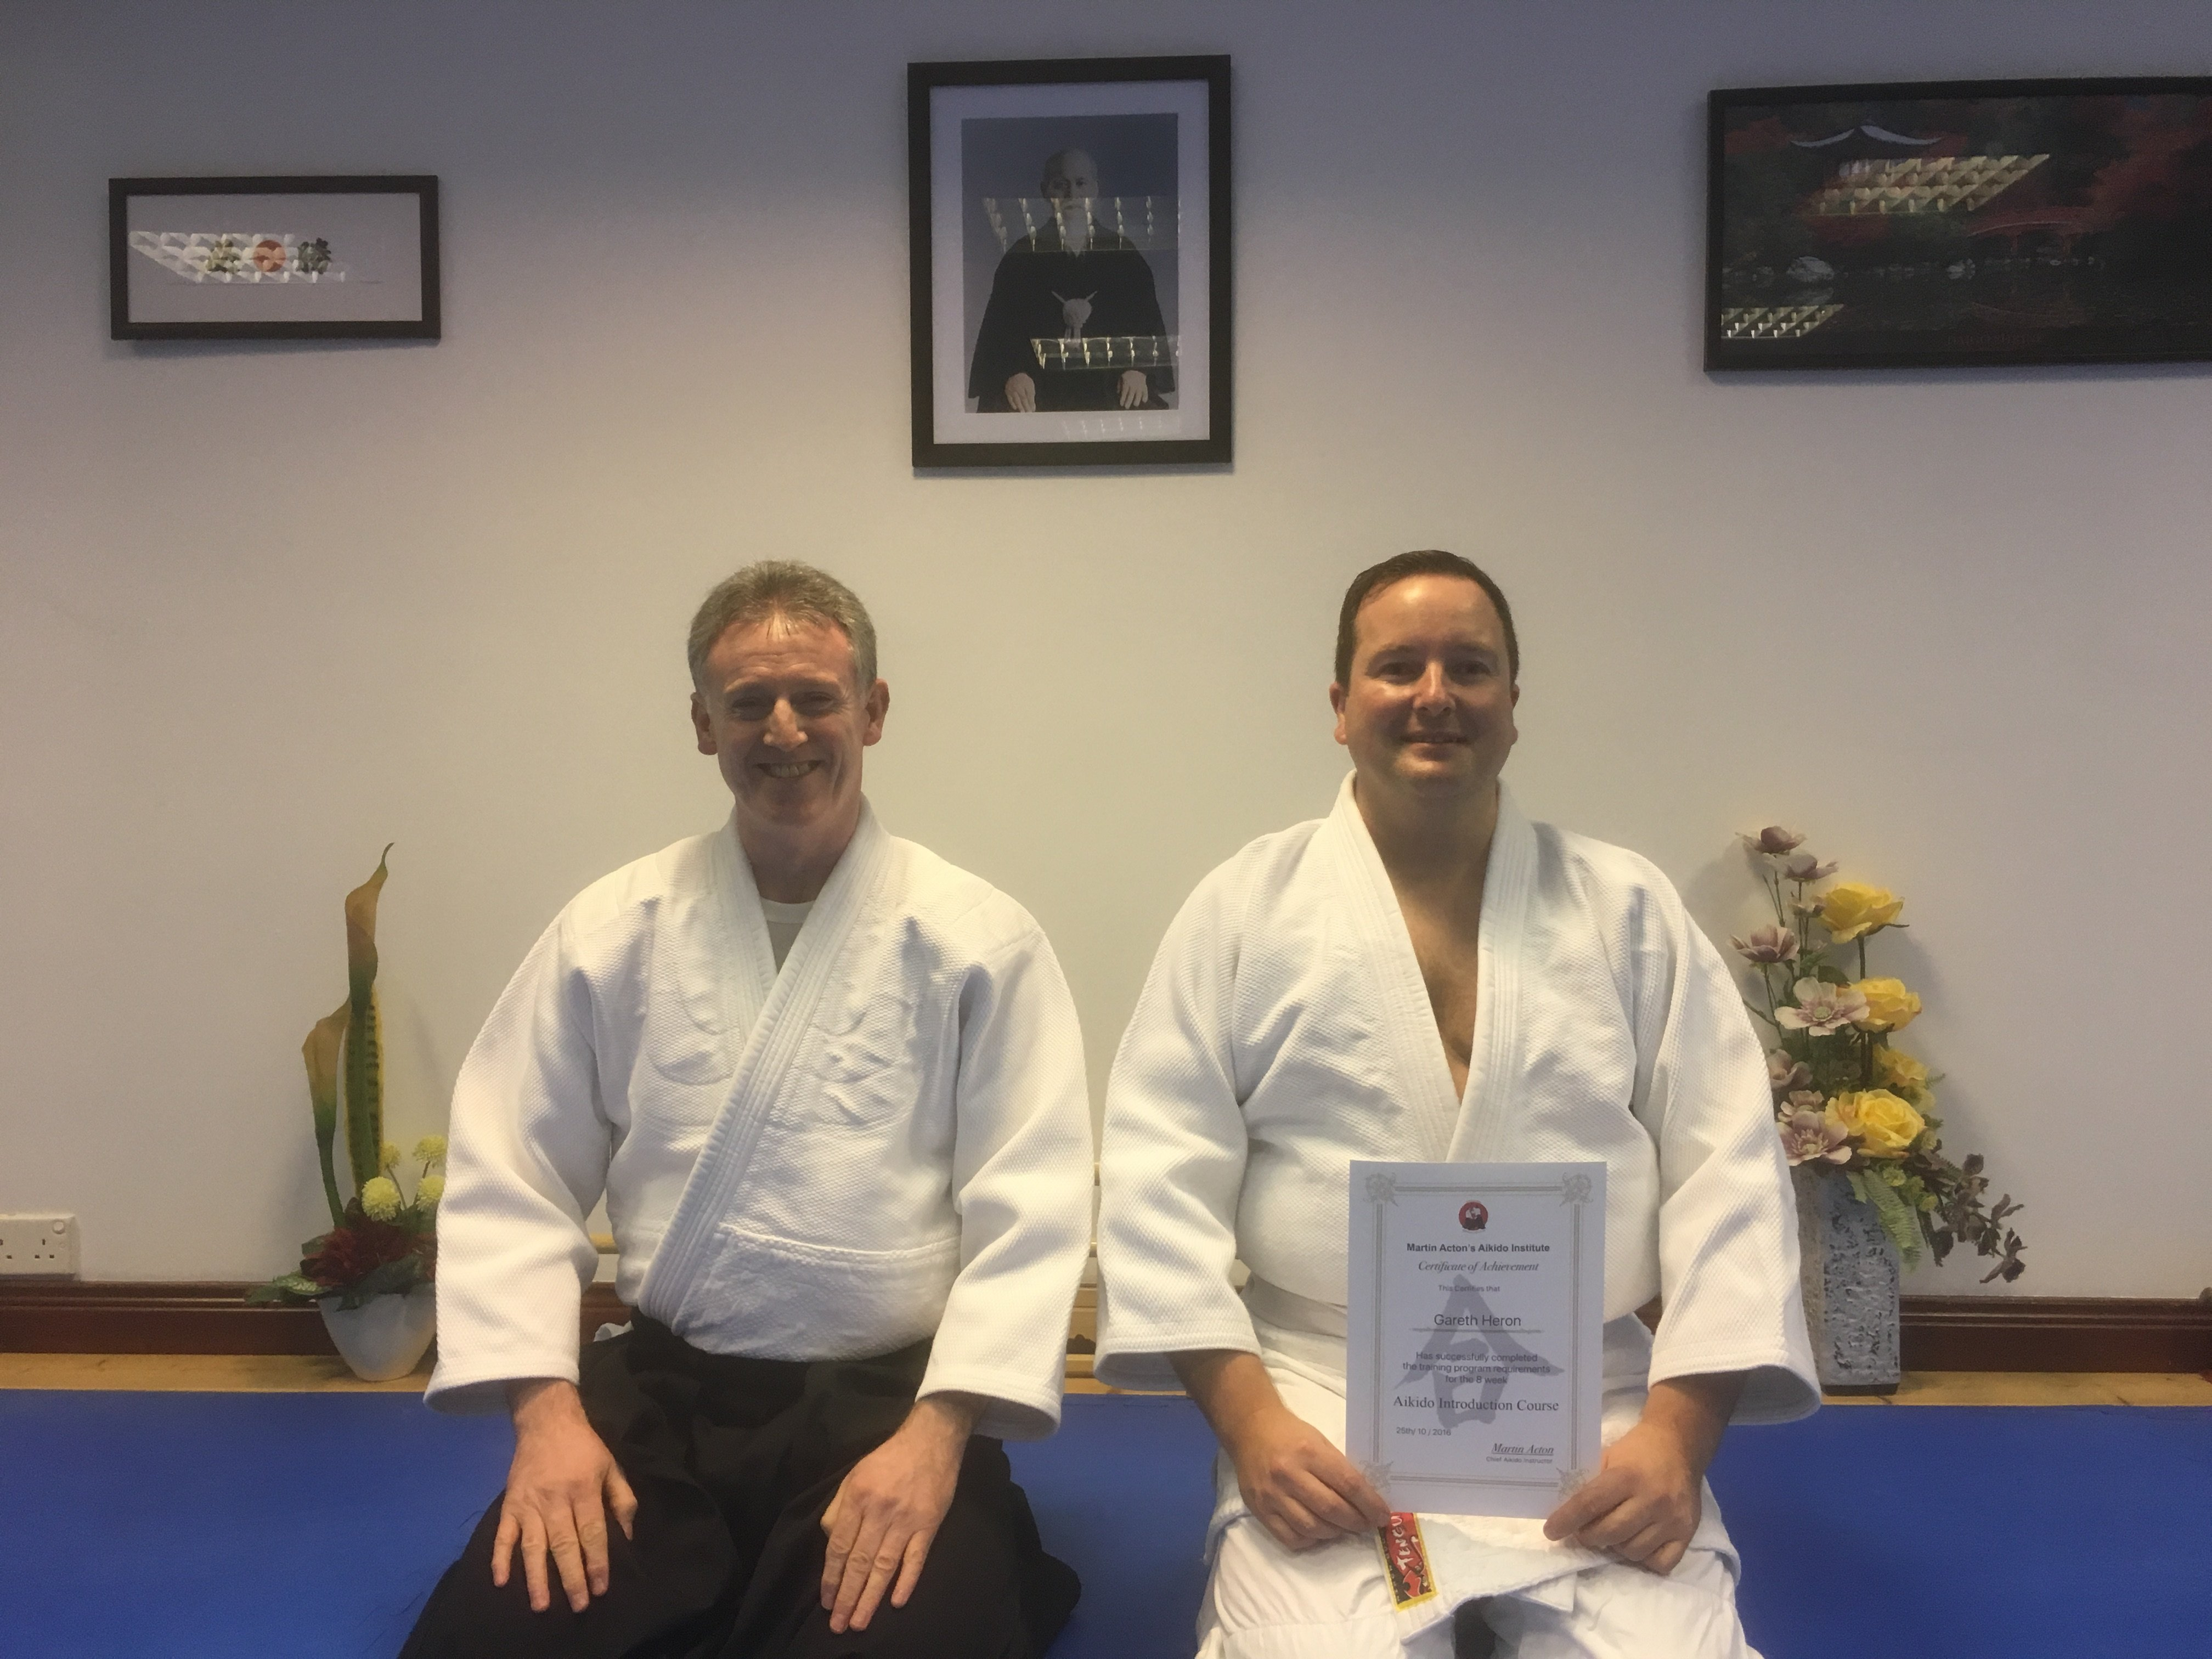 Teacher and student with certificate kneeling